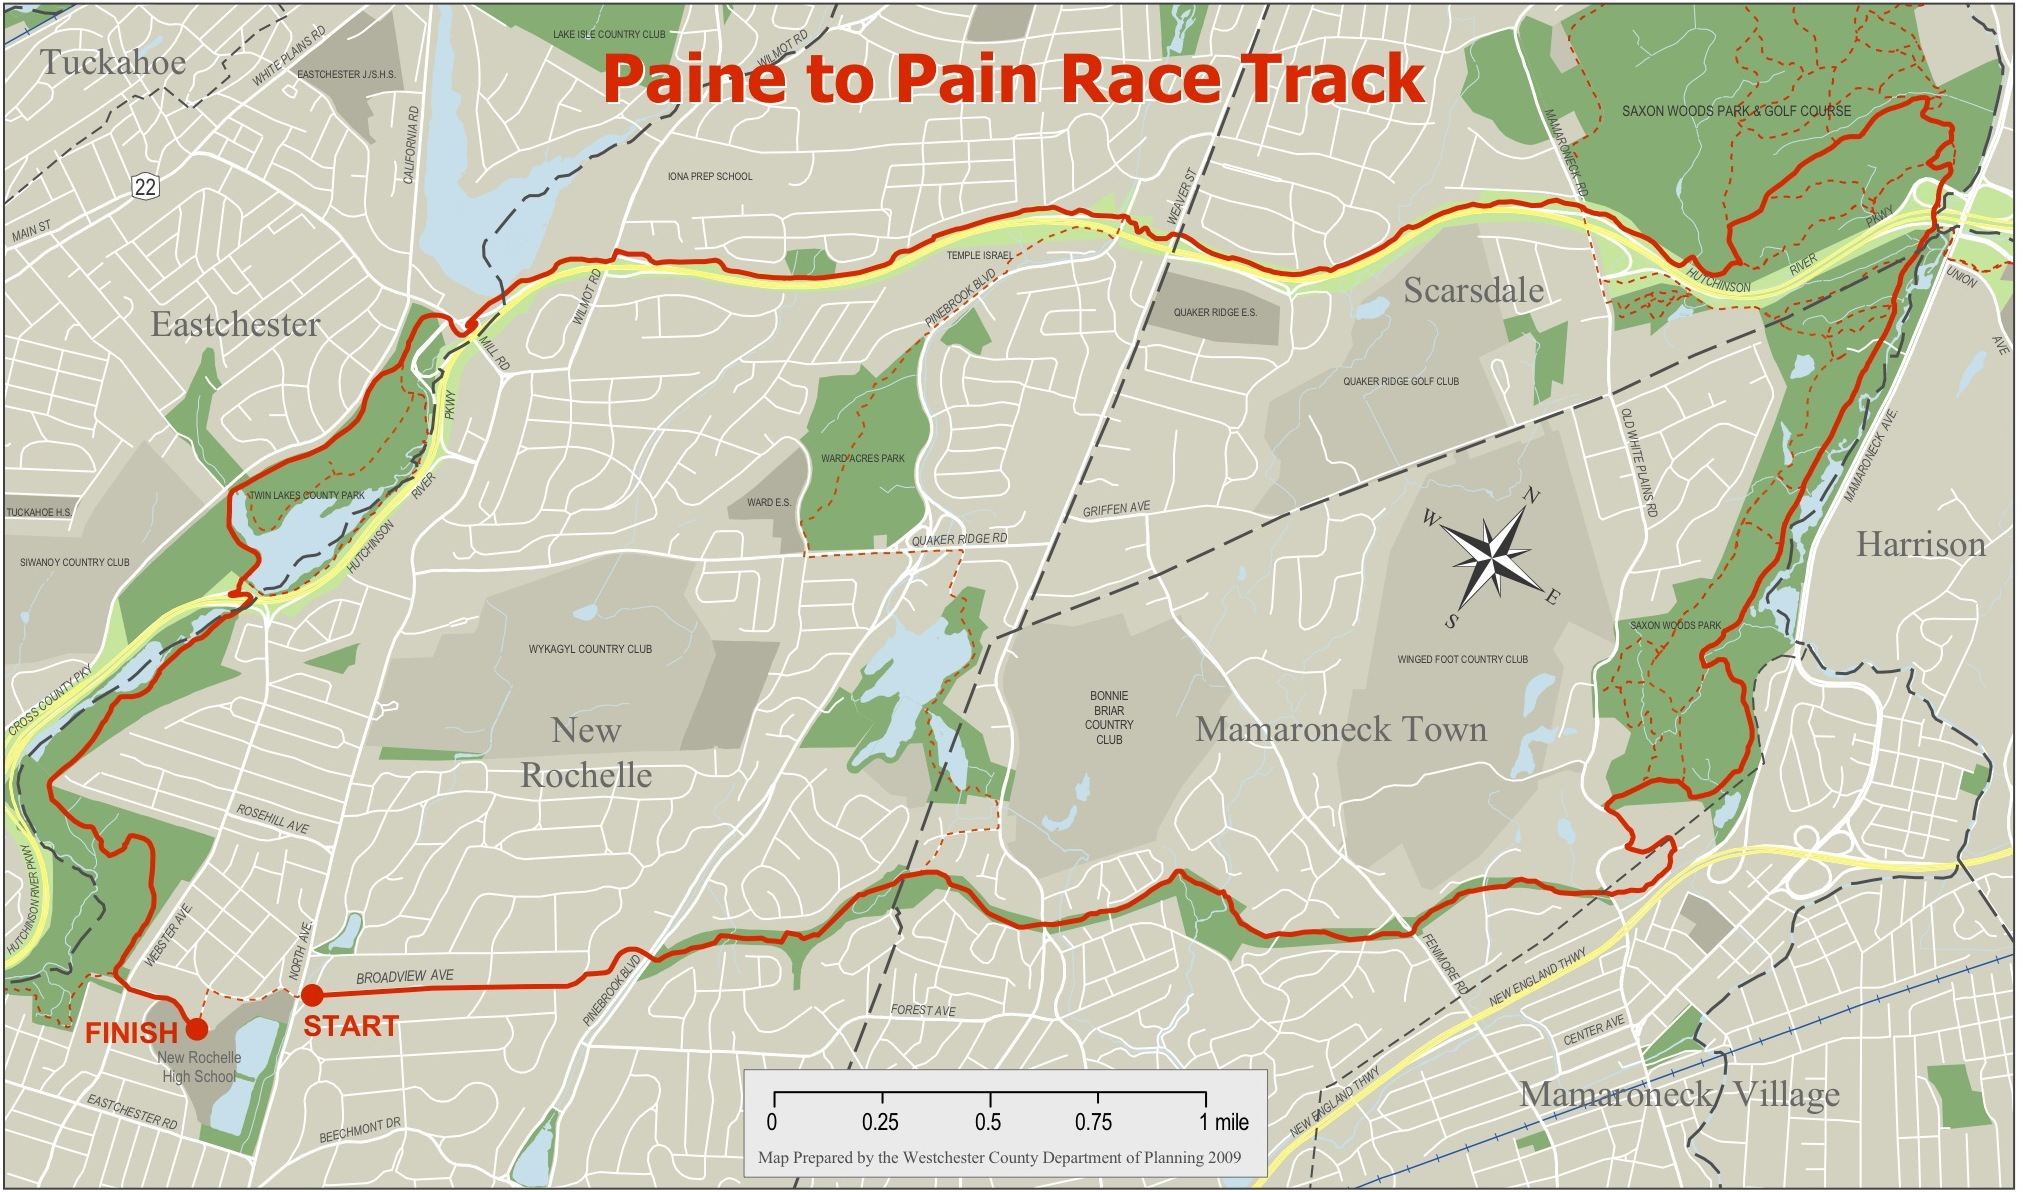 Paine to Pain Race Track